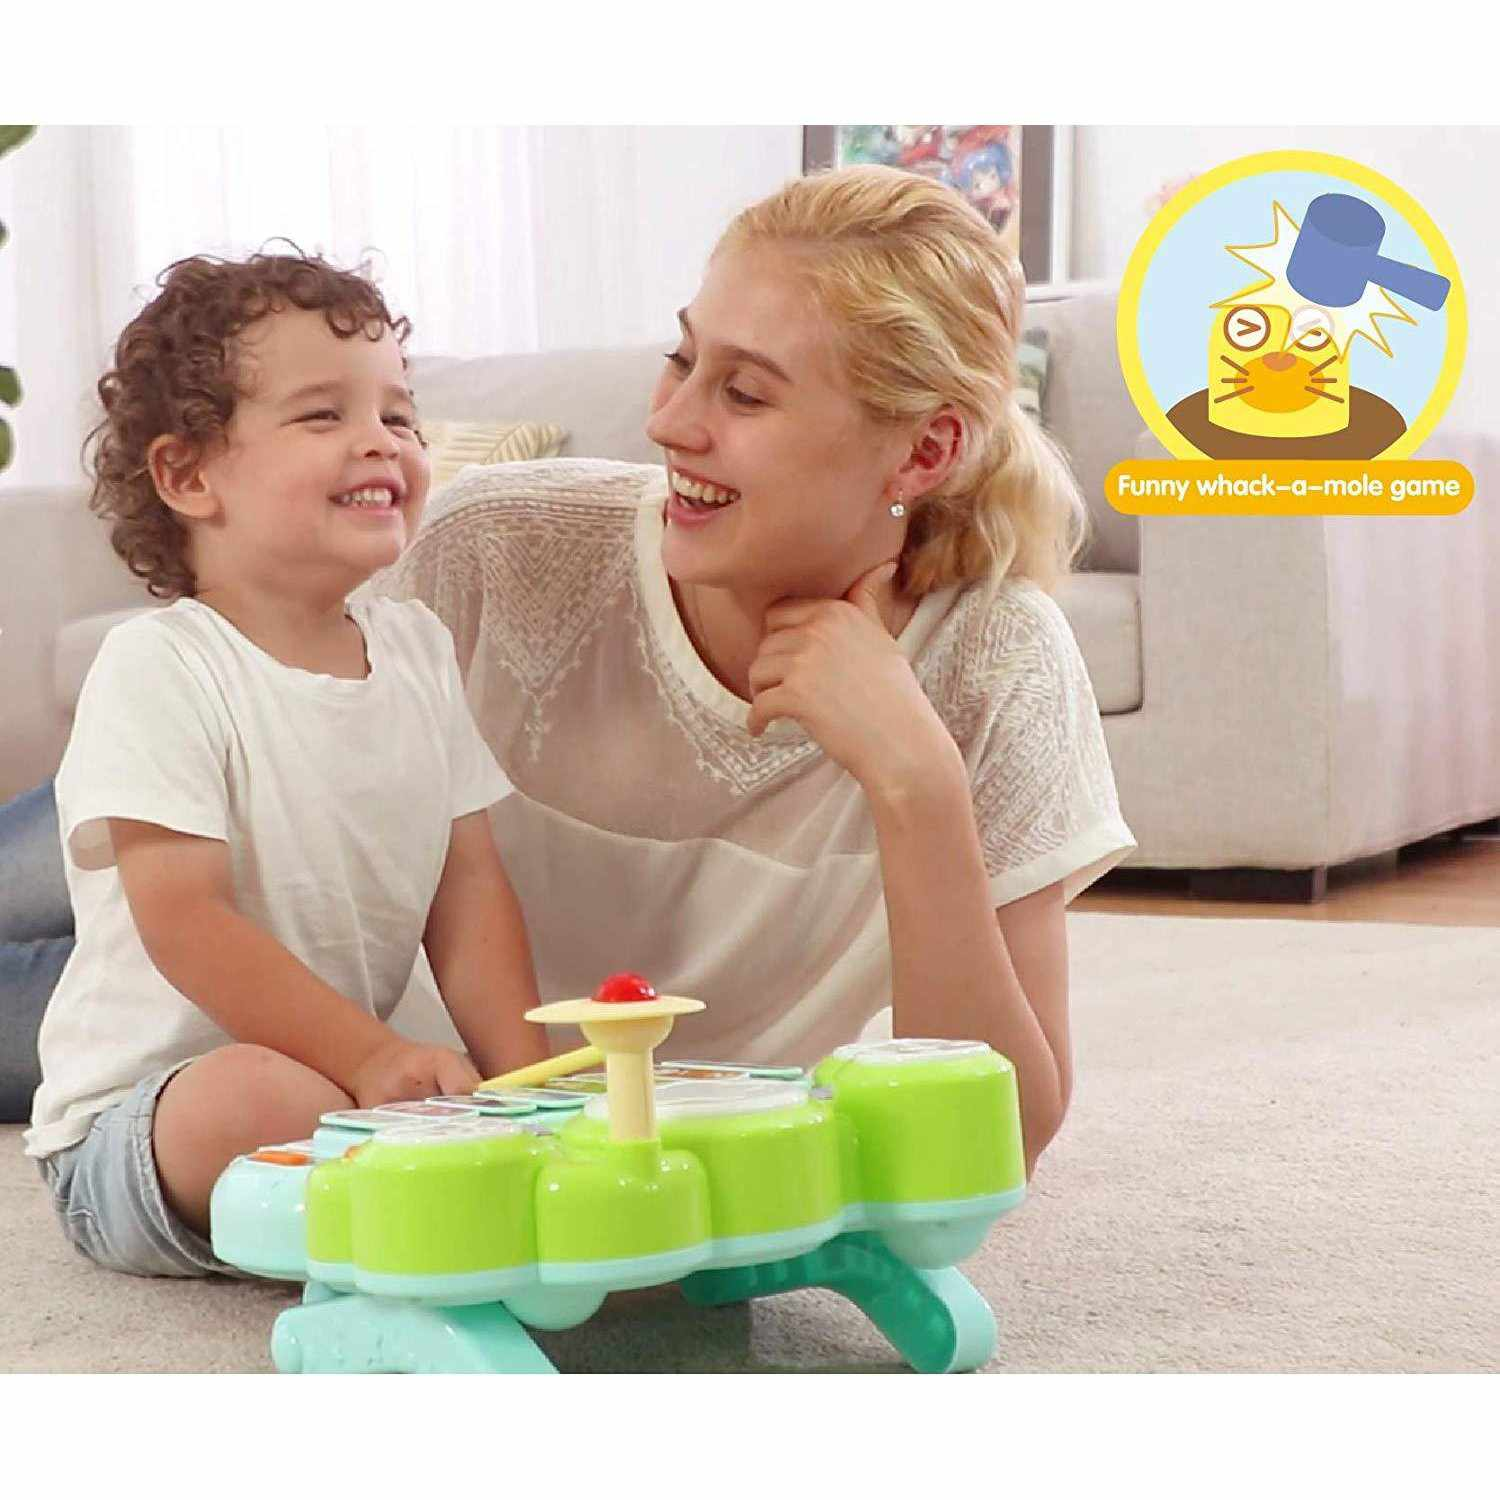 Orapple Toys Musical Learning Station Toys for Kids